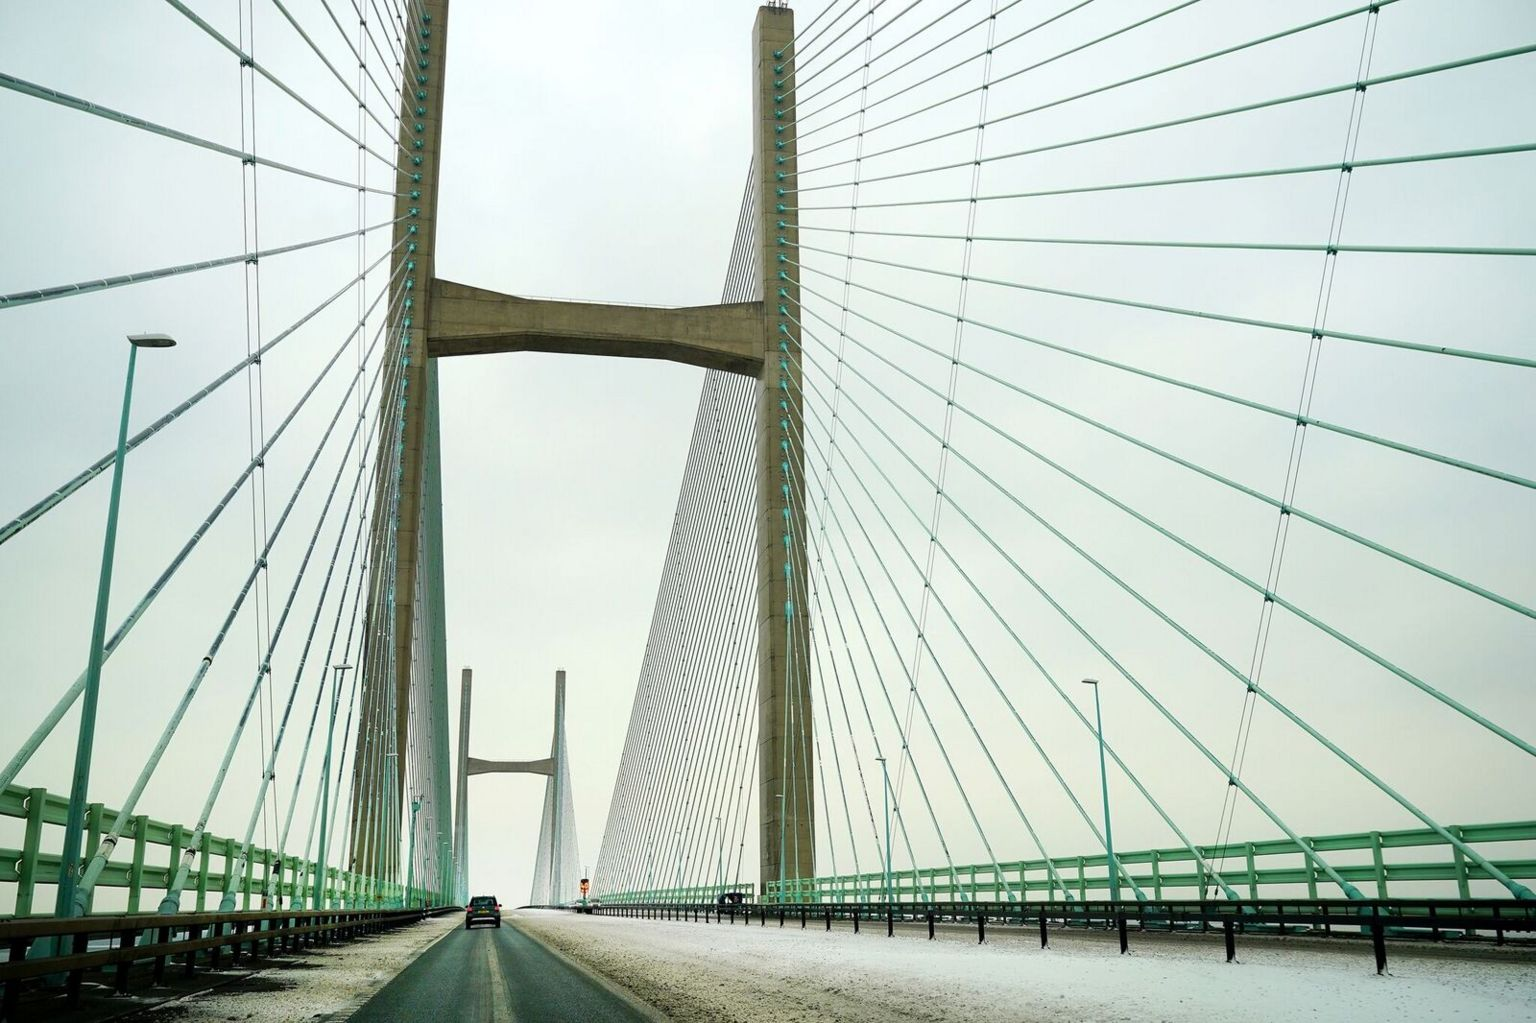 Snow on the Prince of Wales Bridge during the 'Beast from the East' storm